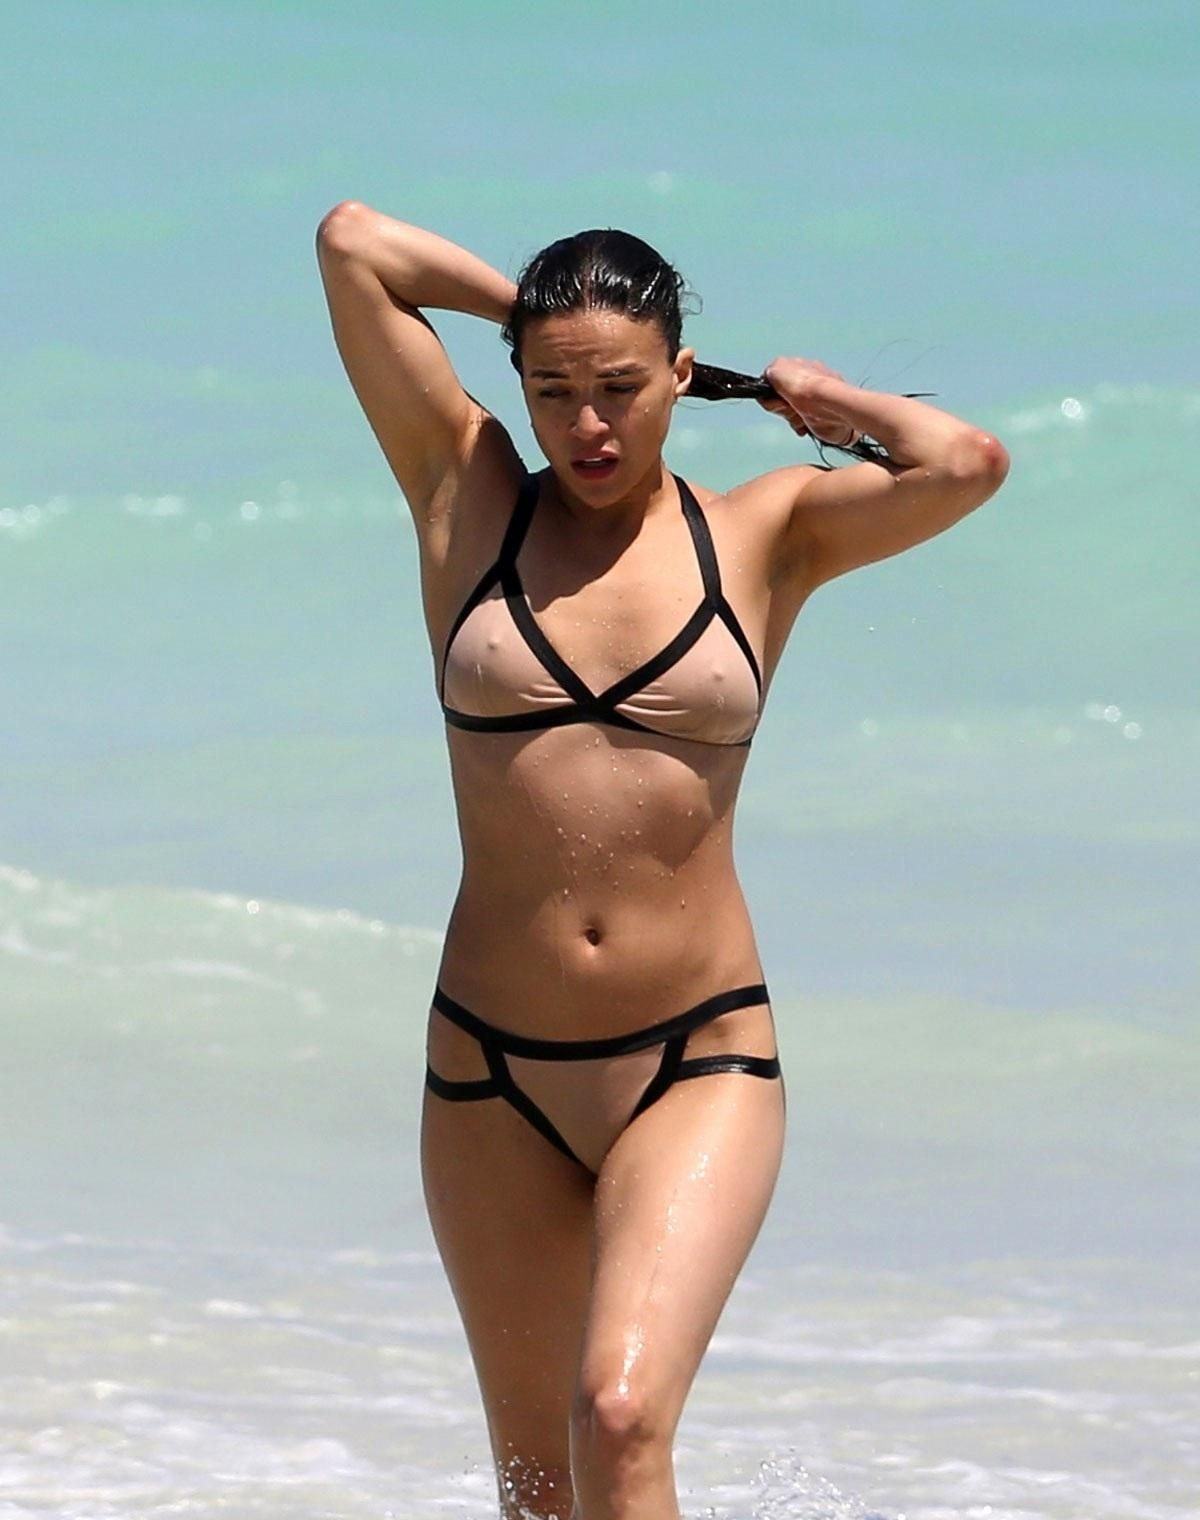 Michelle rodriguez panties - 2019 year